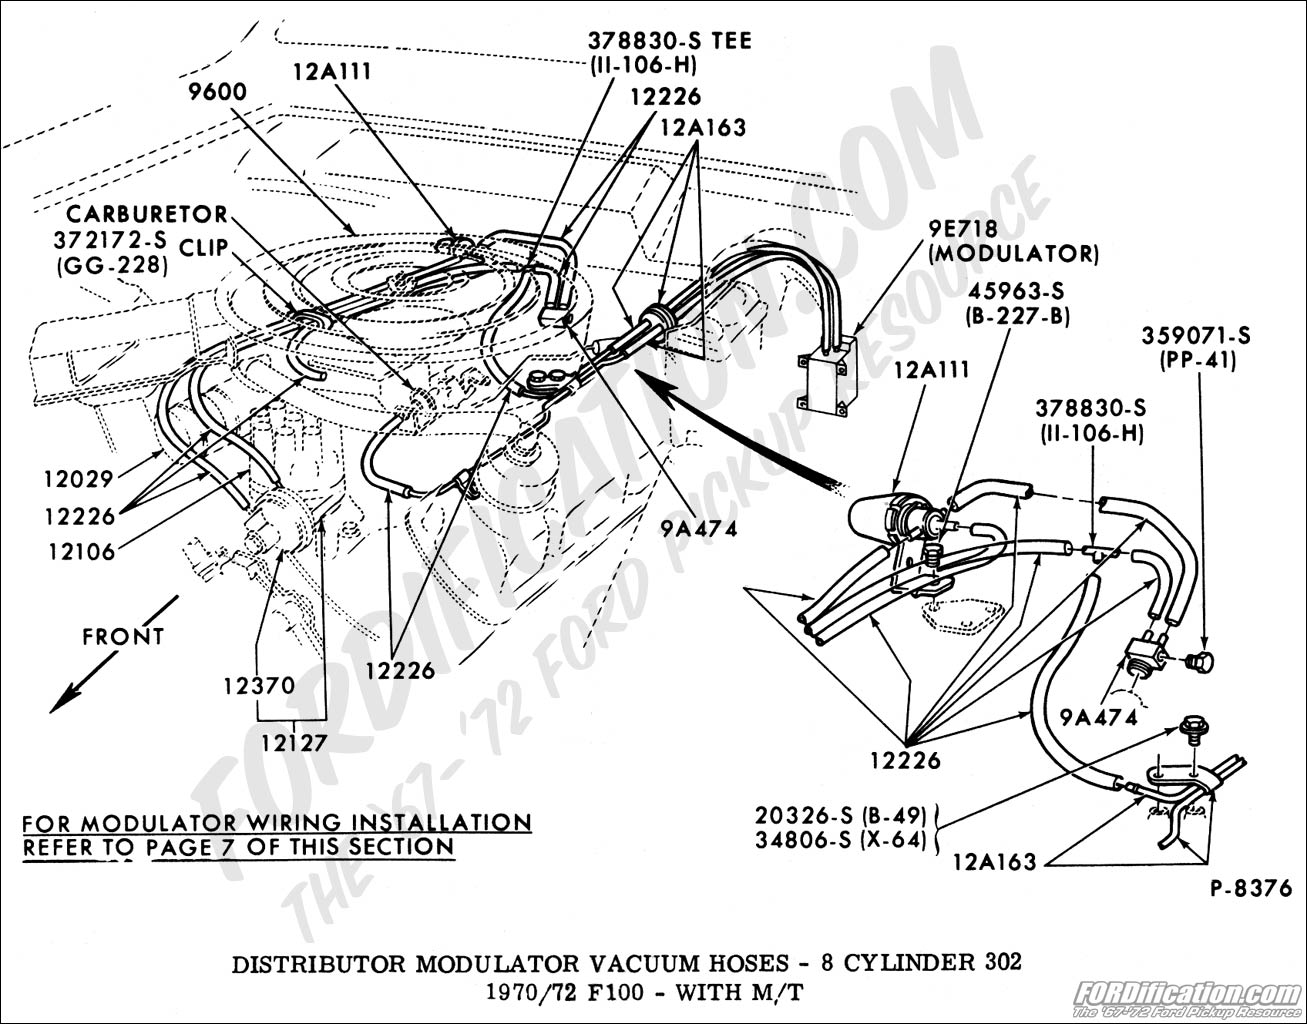 Ford F100 Engine Diagram - Wiring Diagram Data energy-visible -  energy-visible.portorhoca.it | 1979 V8 Ford Engine Diagram |  | portorhoca.it